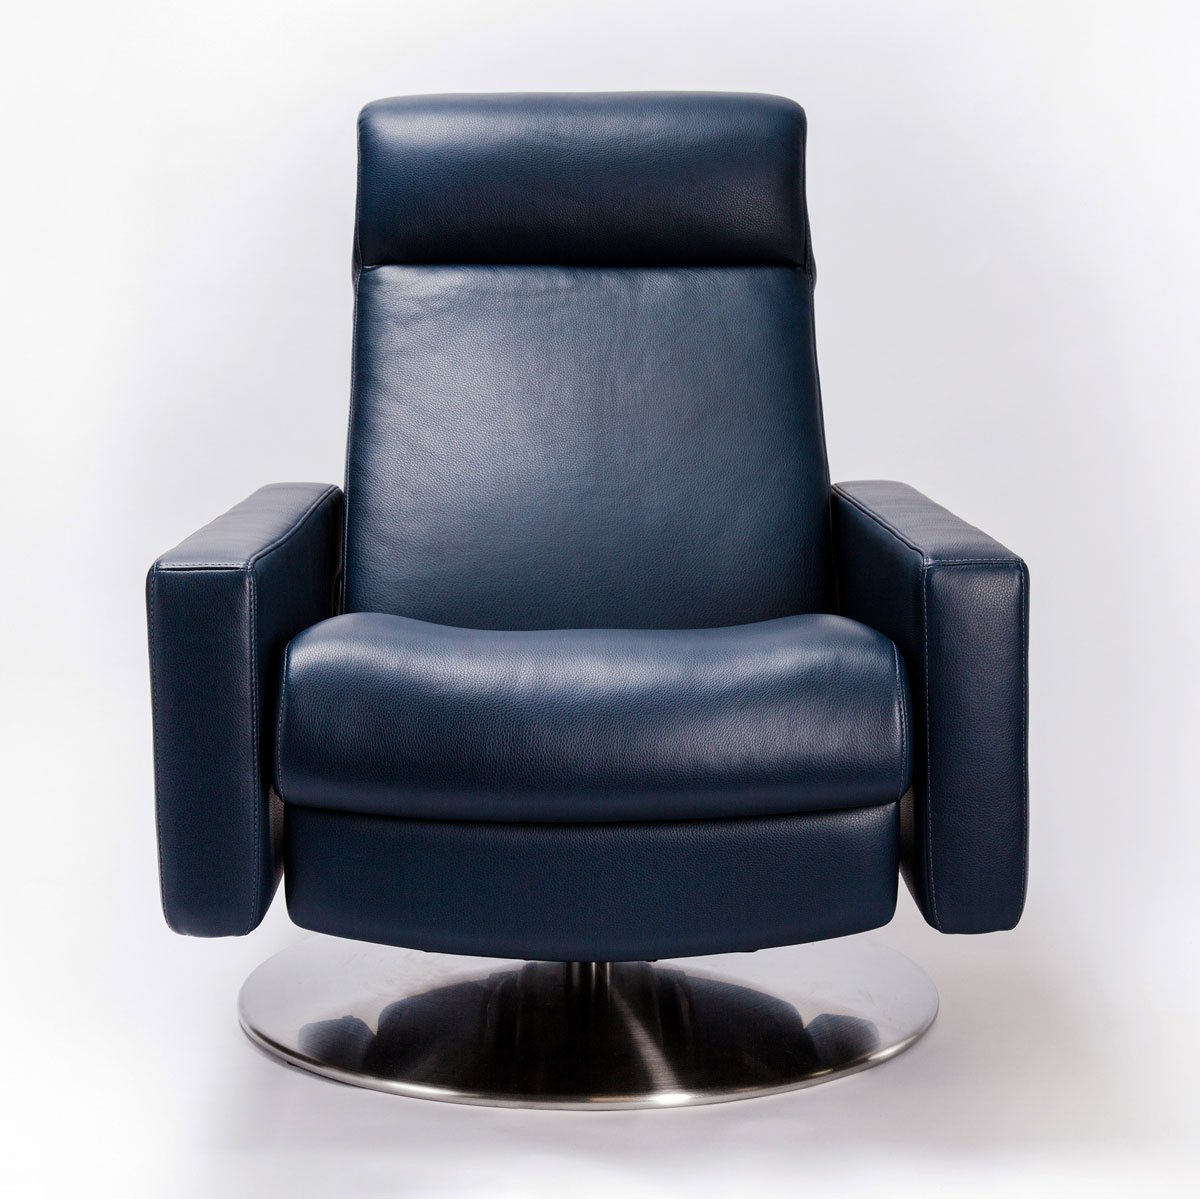 Cloud Comfort Air by American Leather